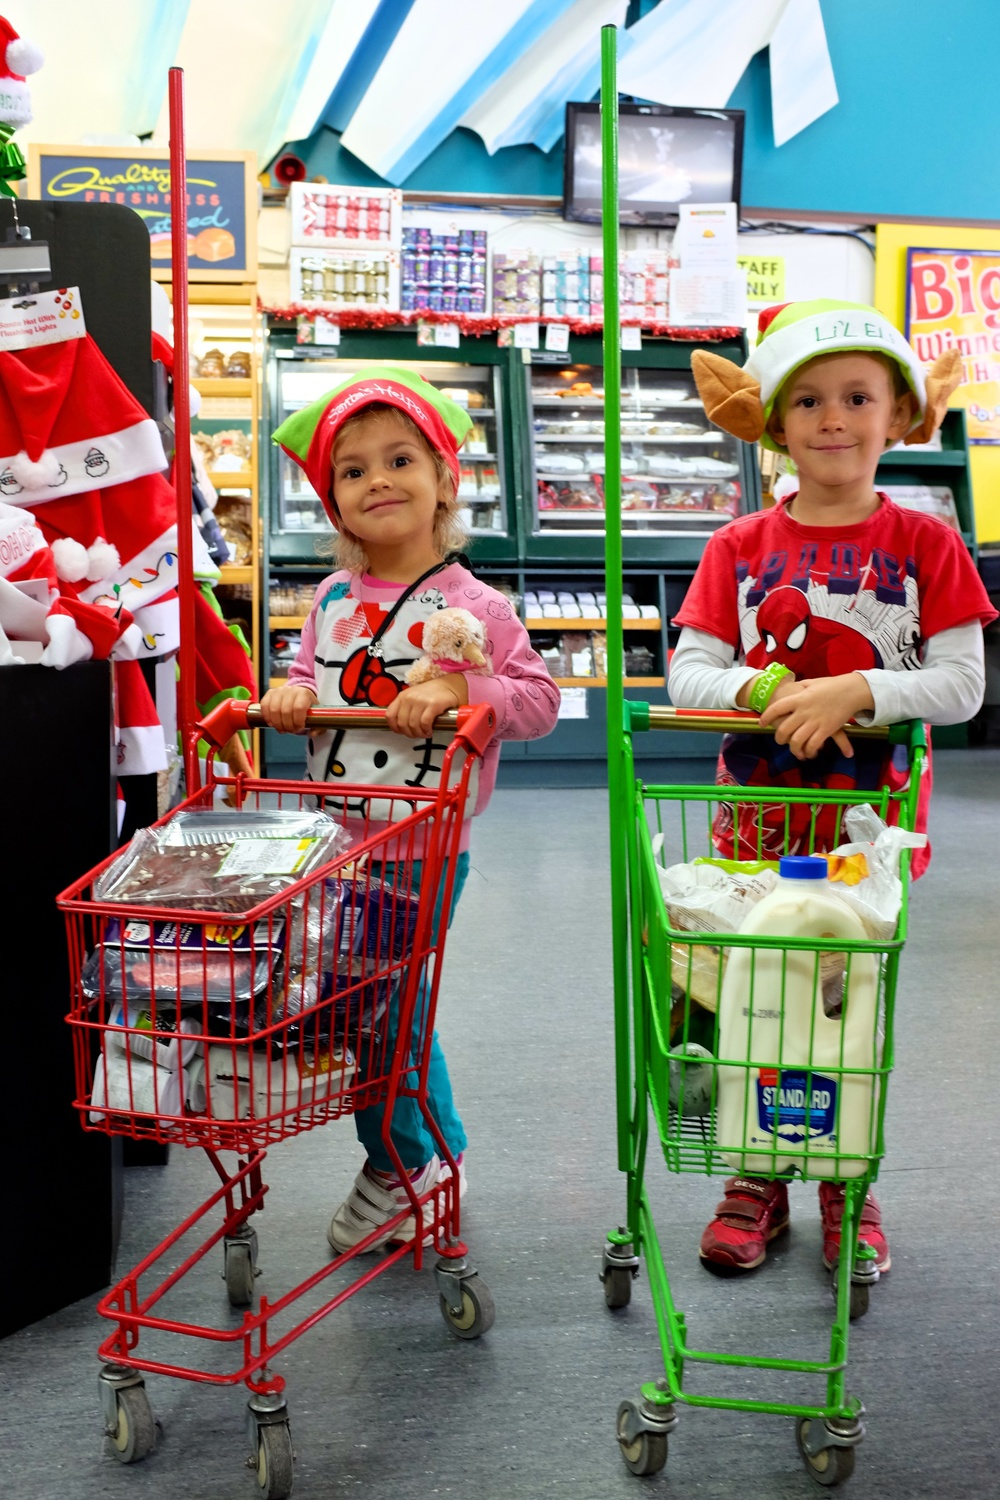 Helpful Elves With Little Carts